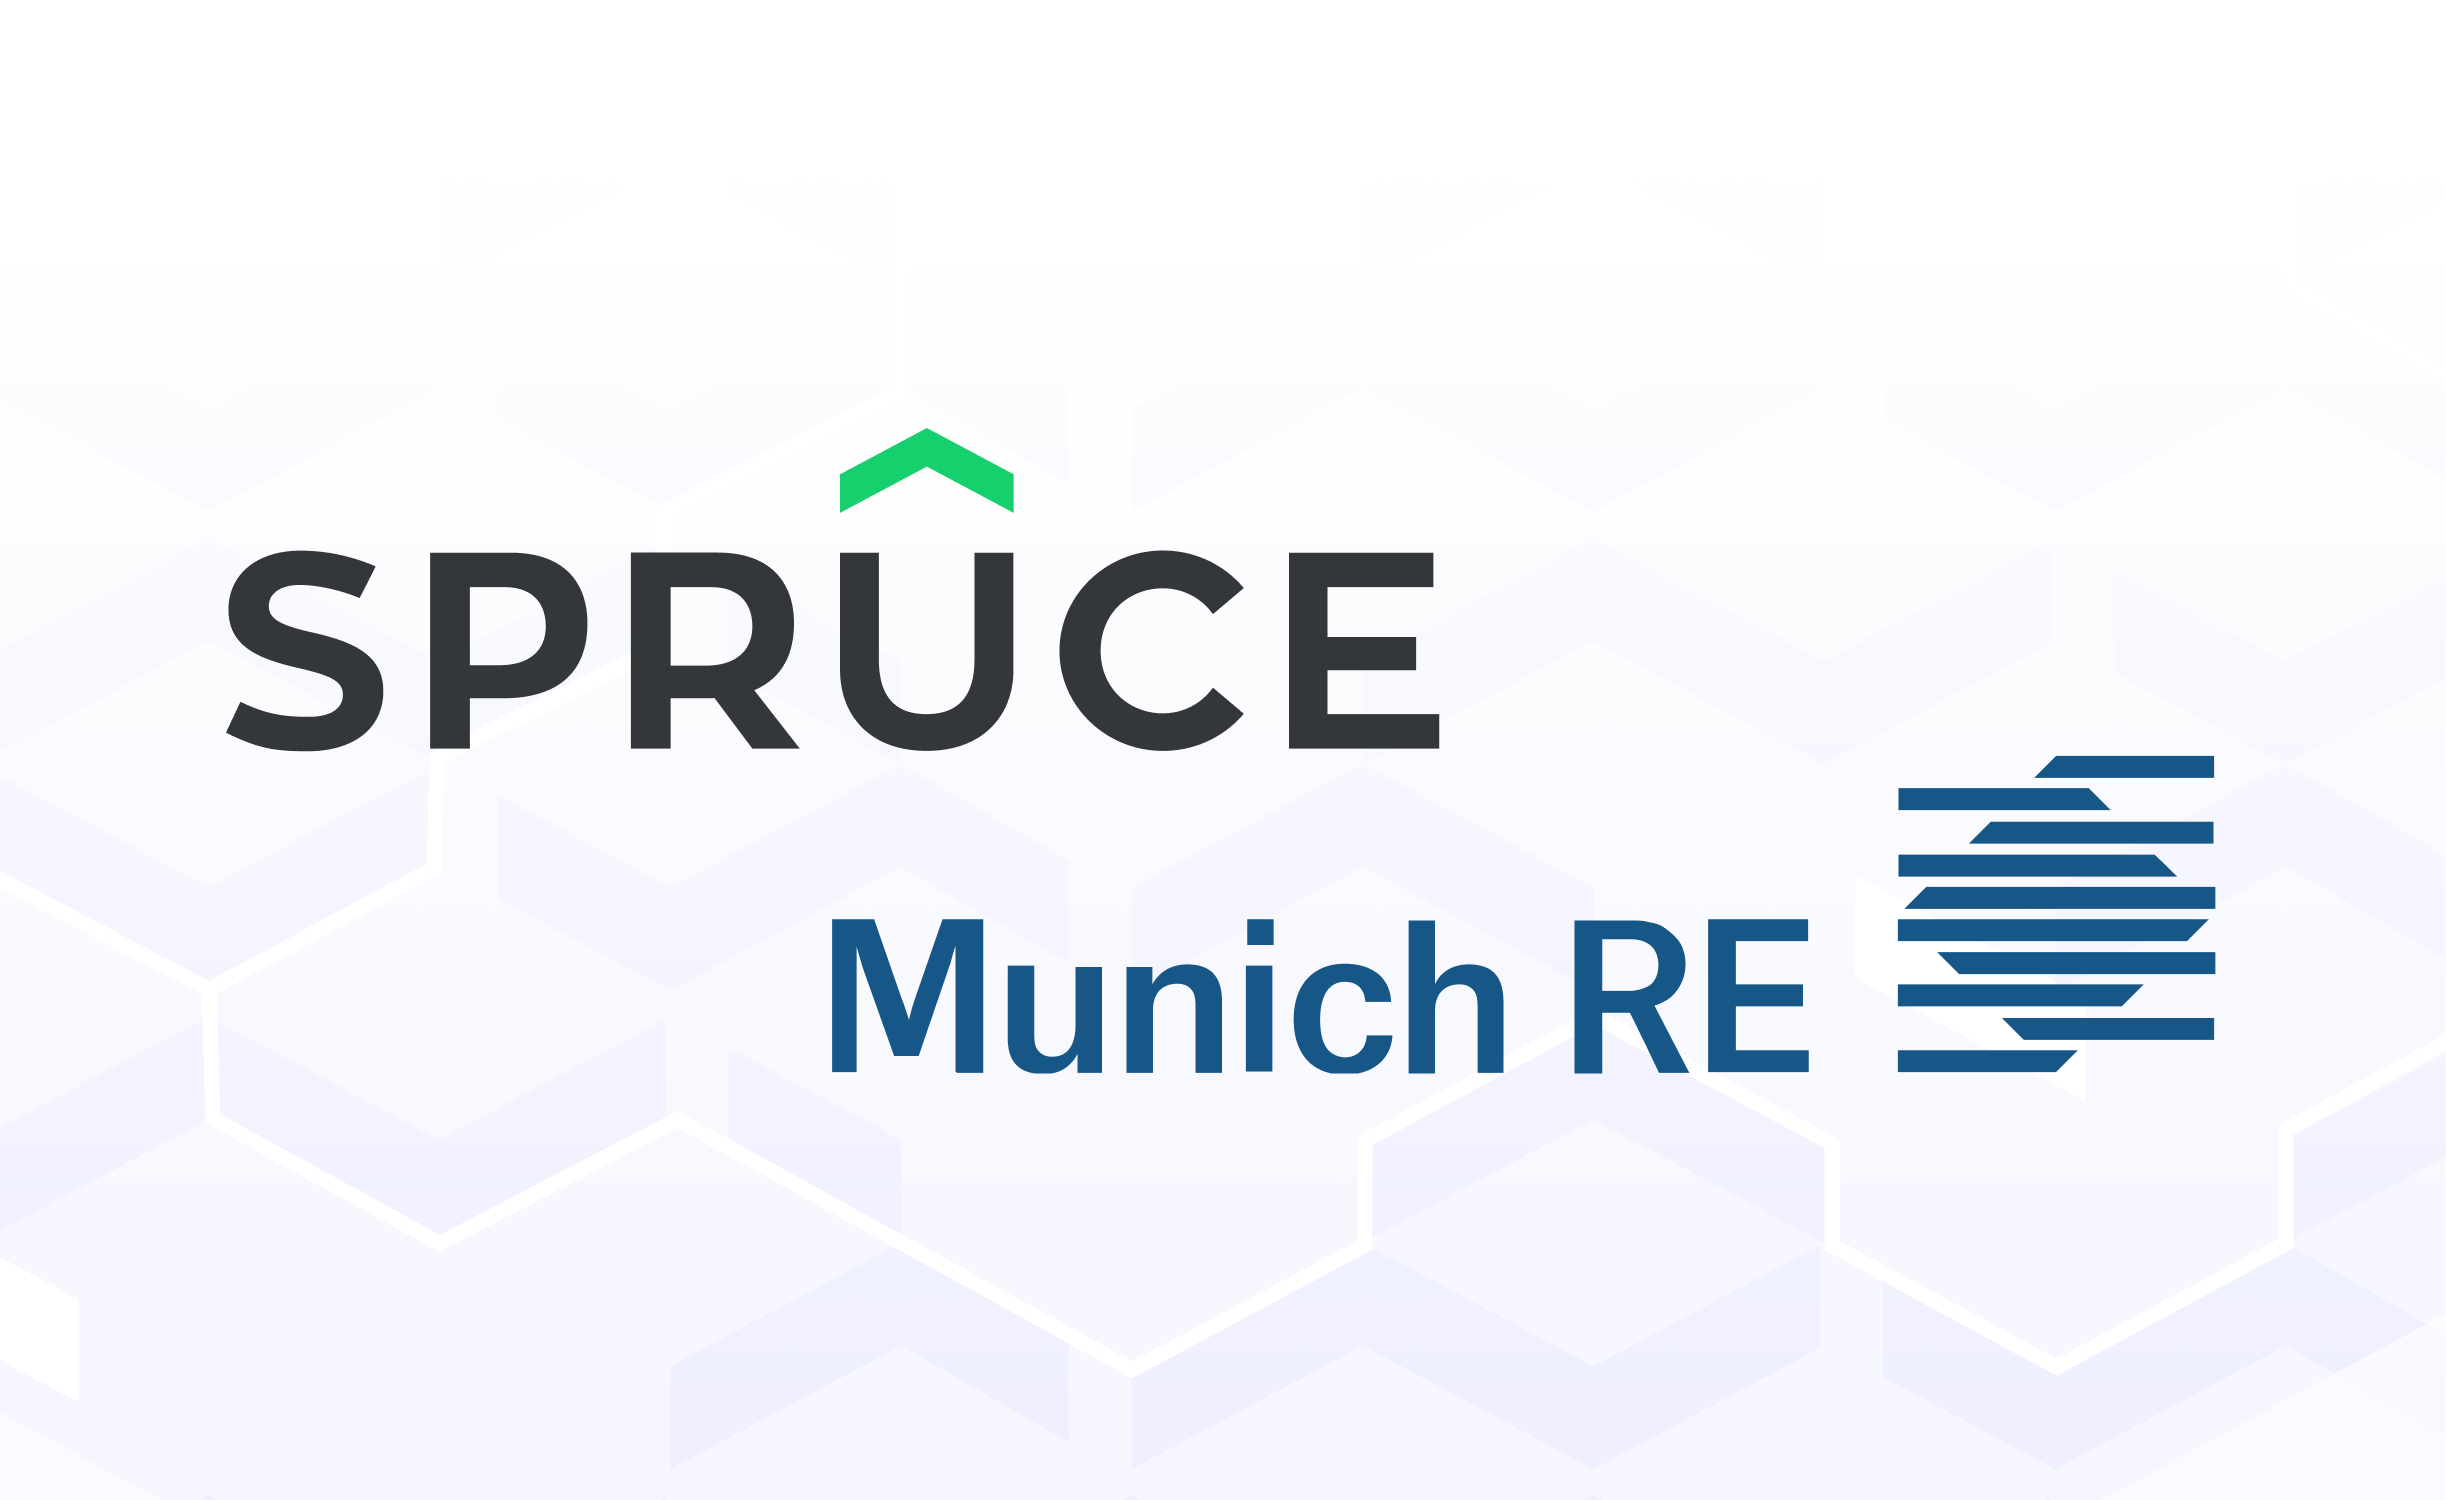 Banner with Spruce and Munich Re logos